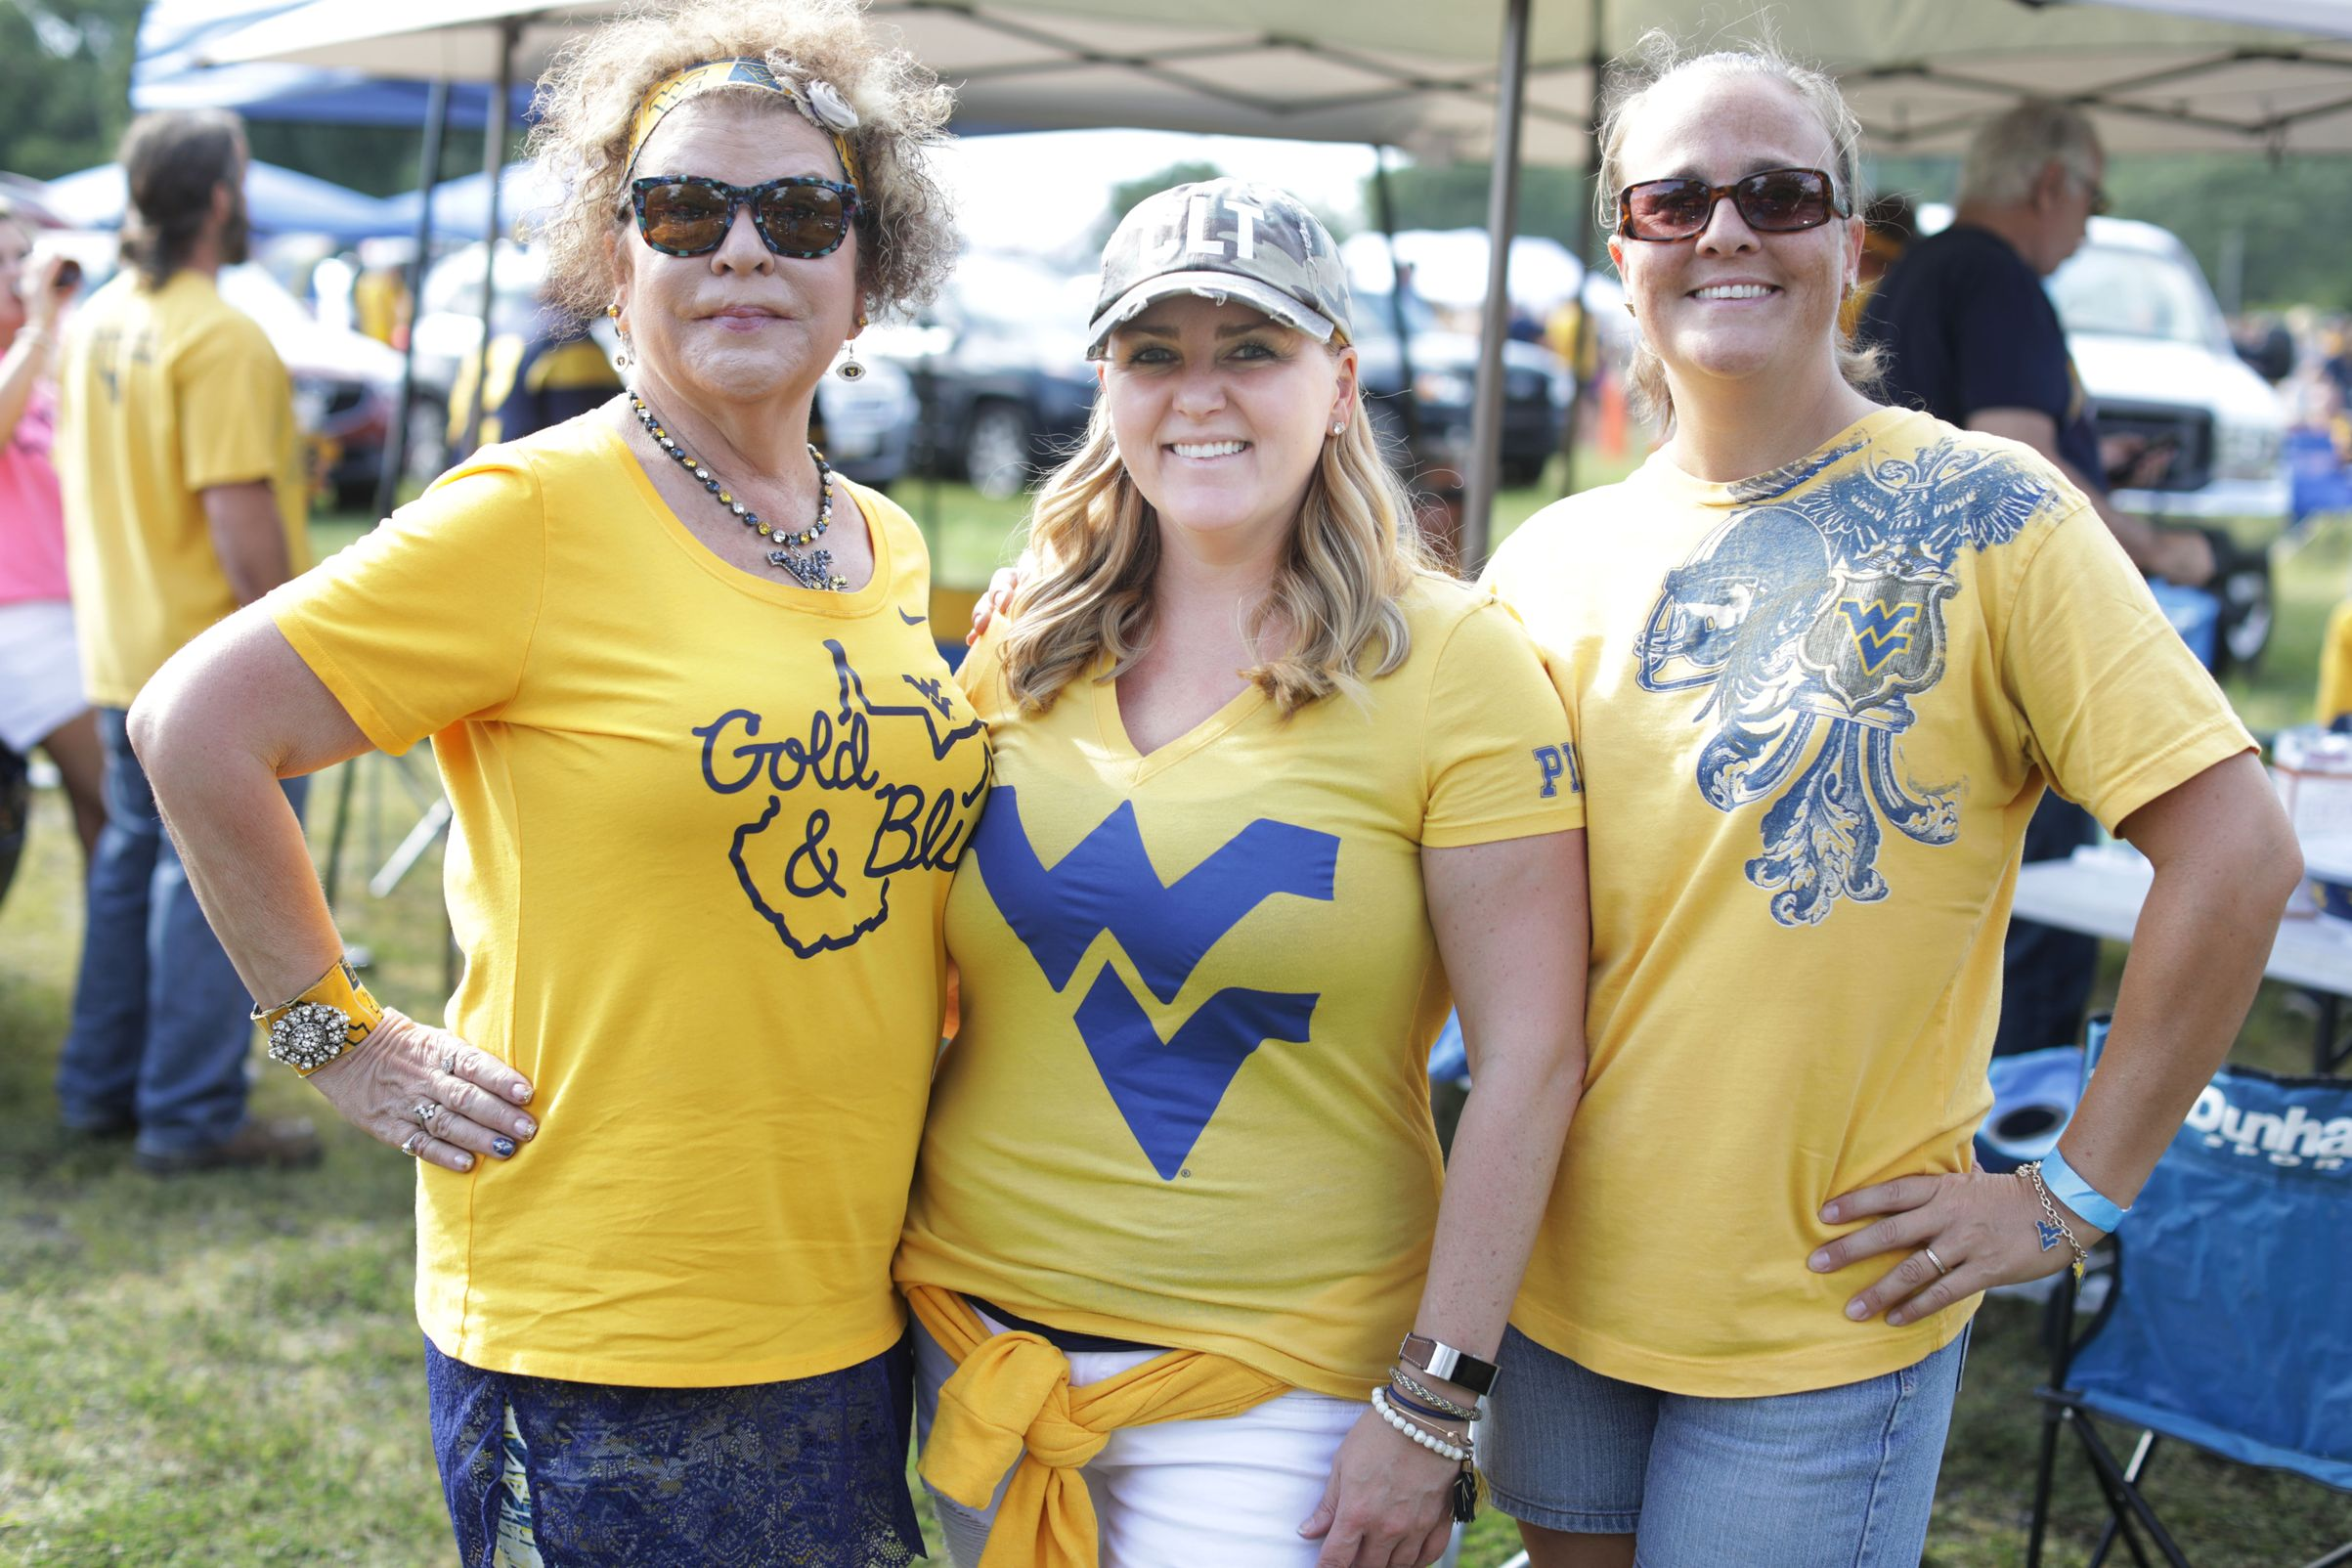 Women at tailgate